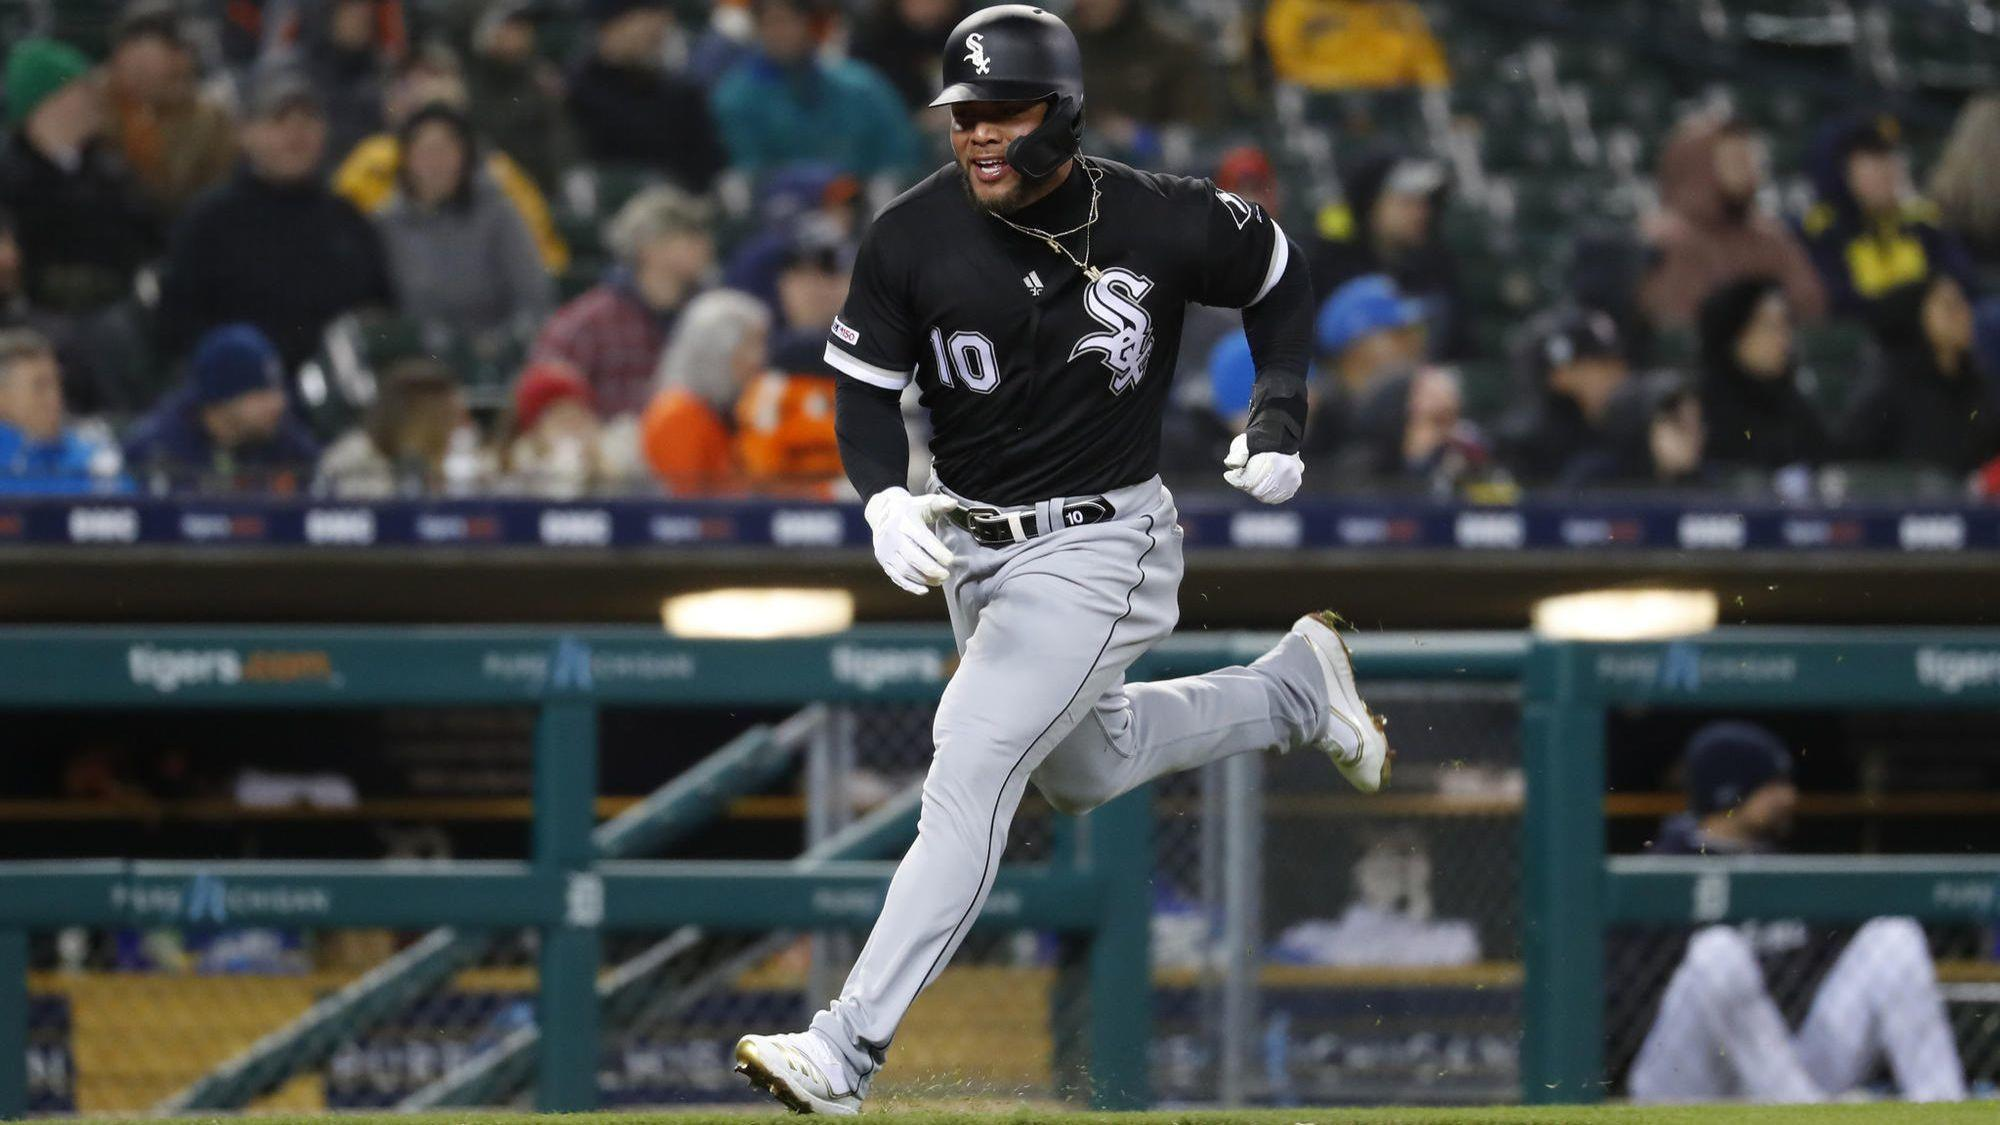 Yoan Moncada stays hot with a long home run as the White Sox top the Tigers 7-3